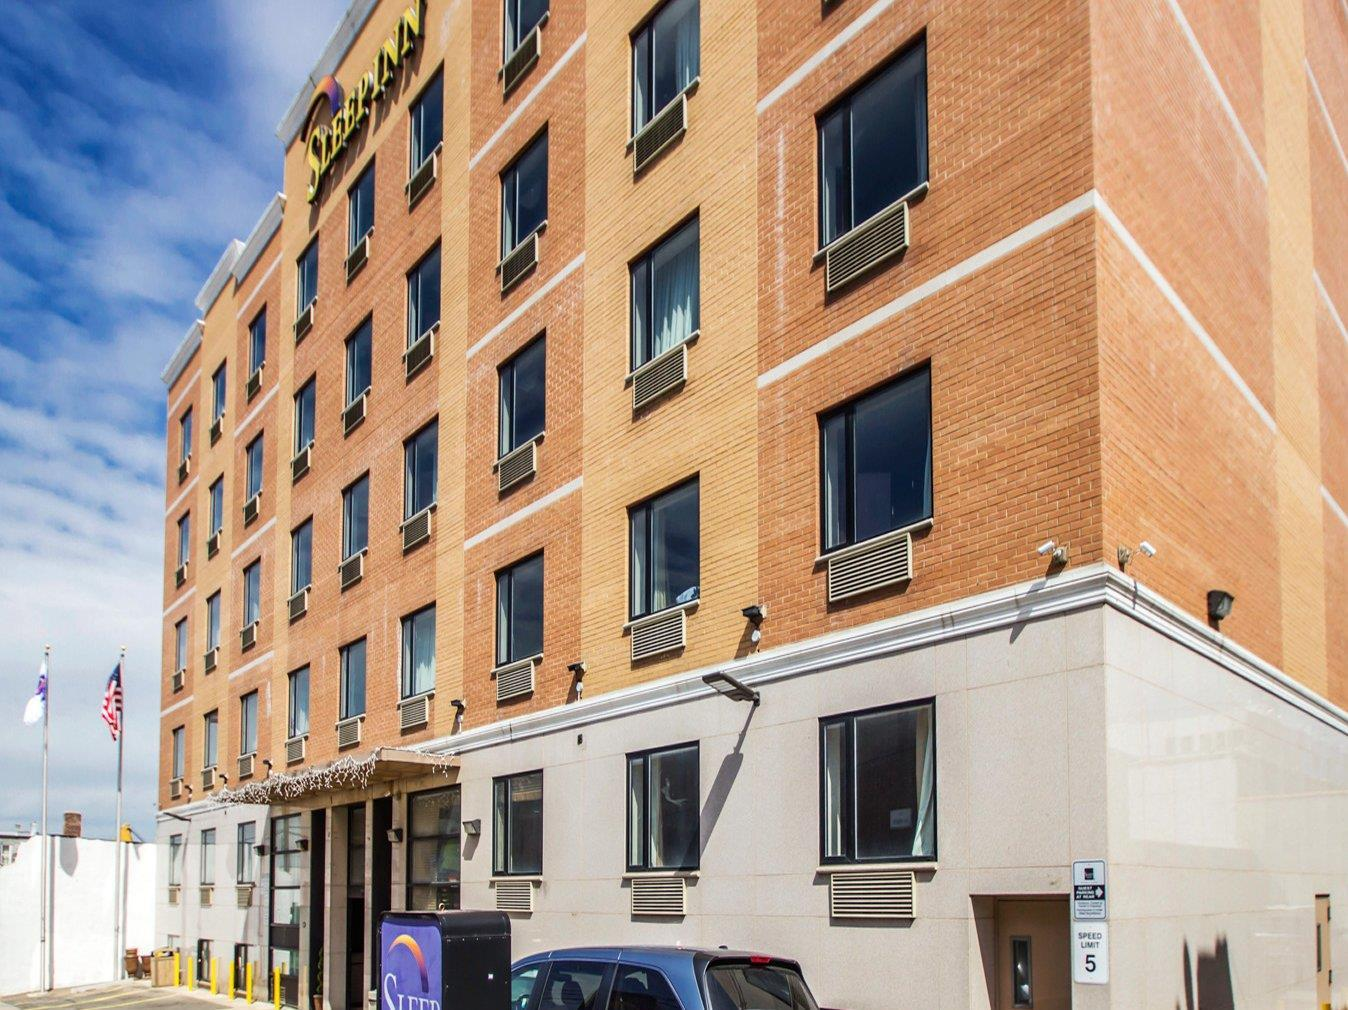 Sleep Inn Brooklyn - Hotel and accommodation in Usa in New York (NY)